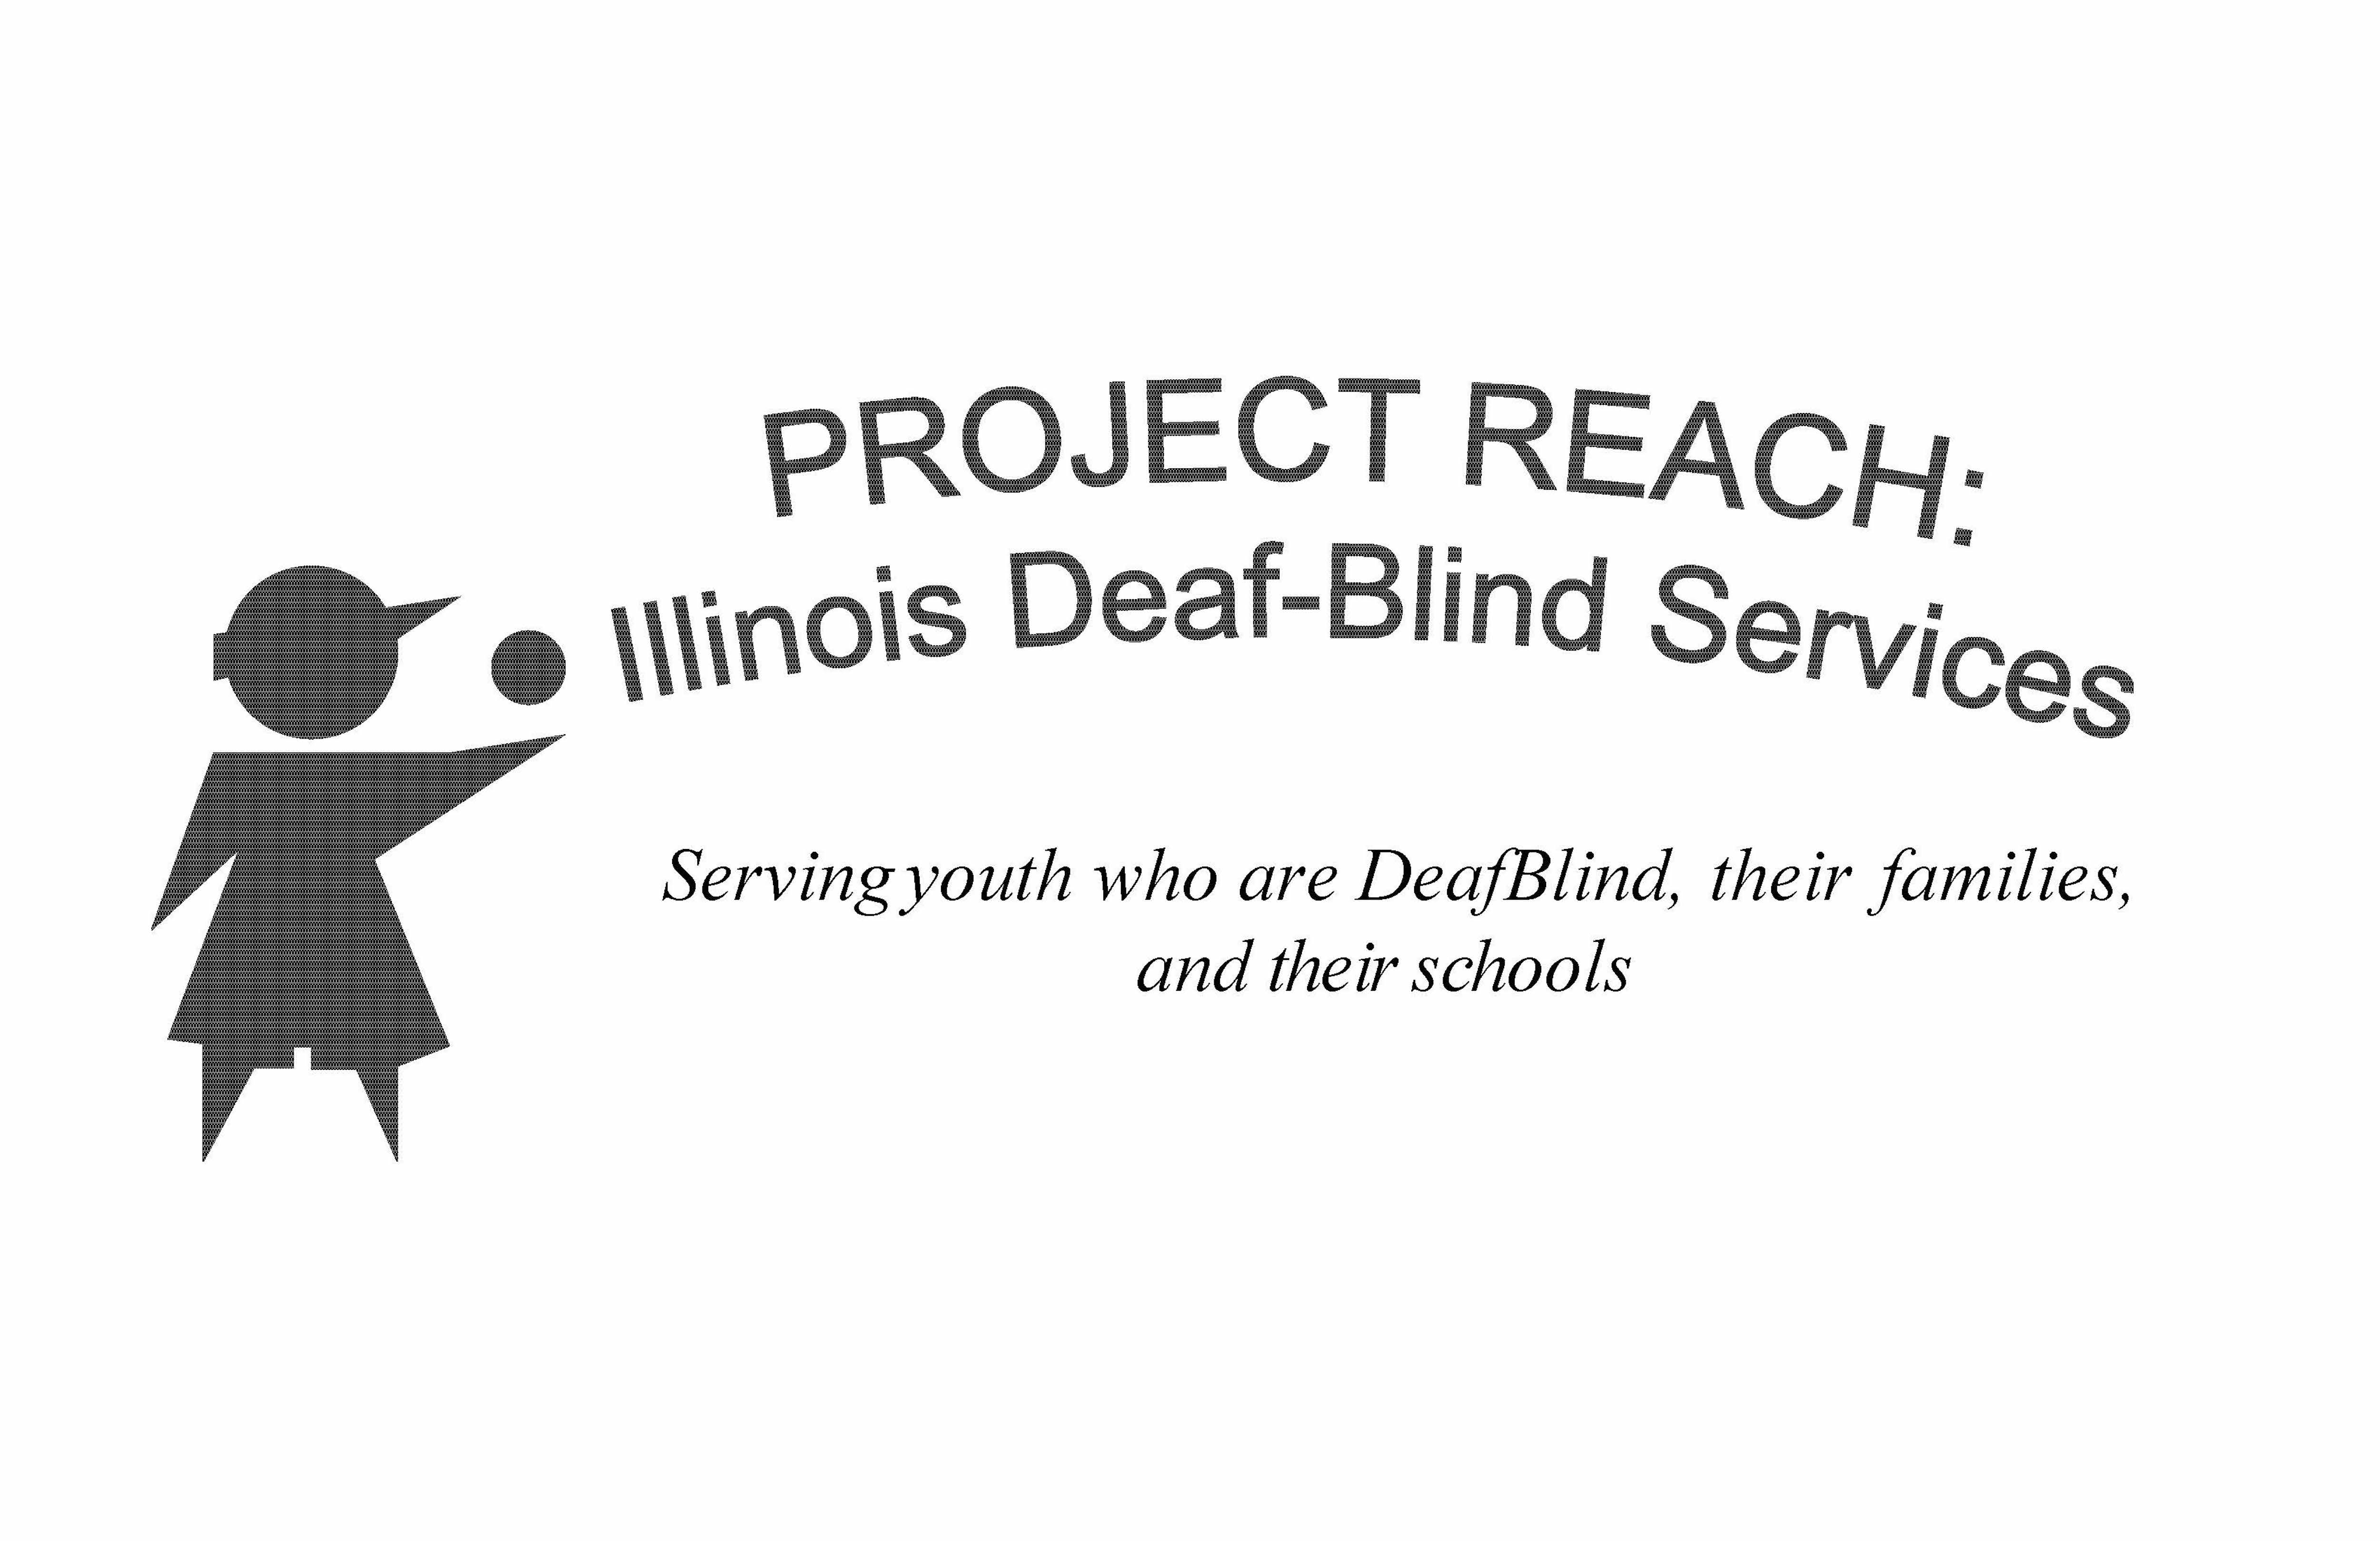 Project Reach: Illinois Deafblind Services Logo